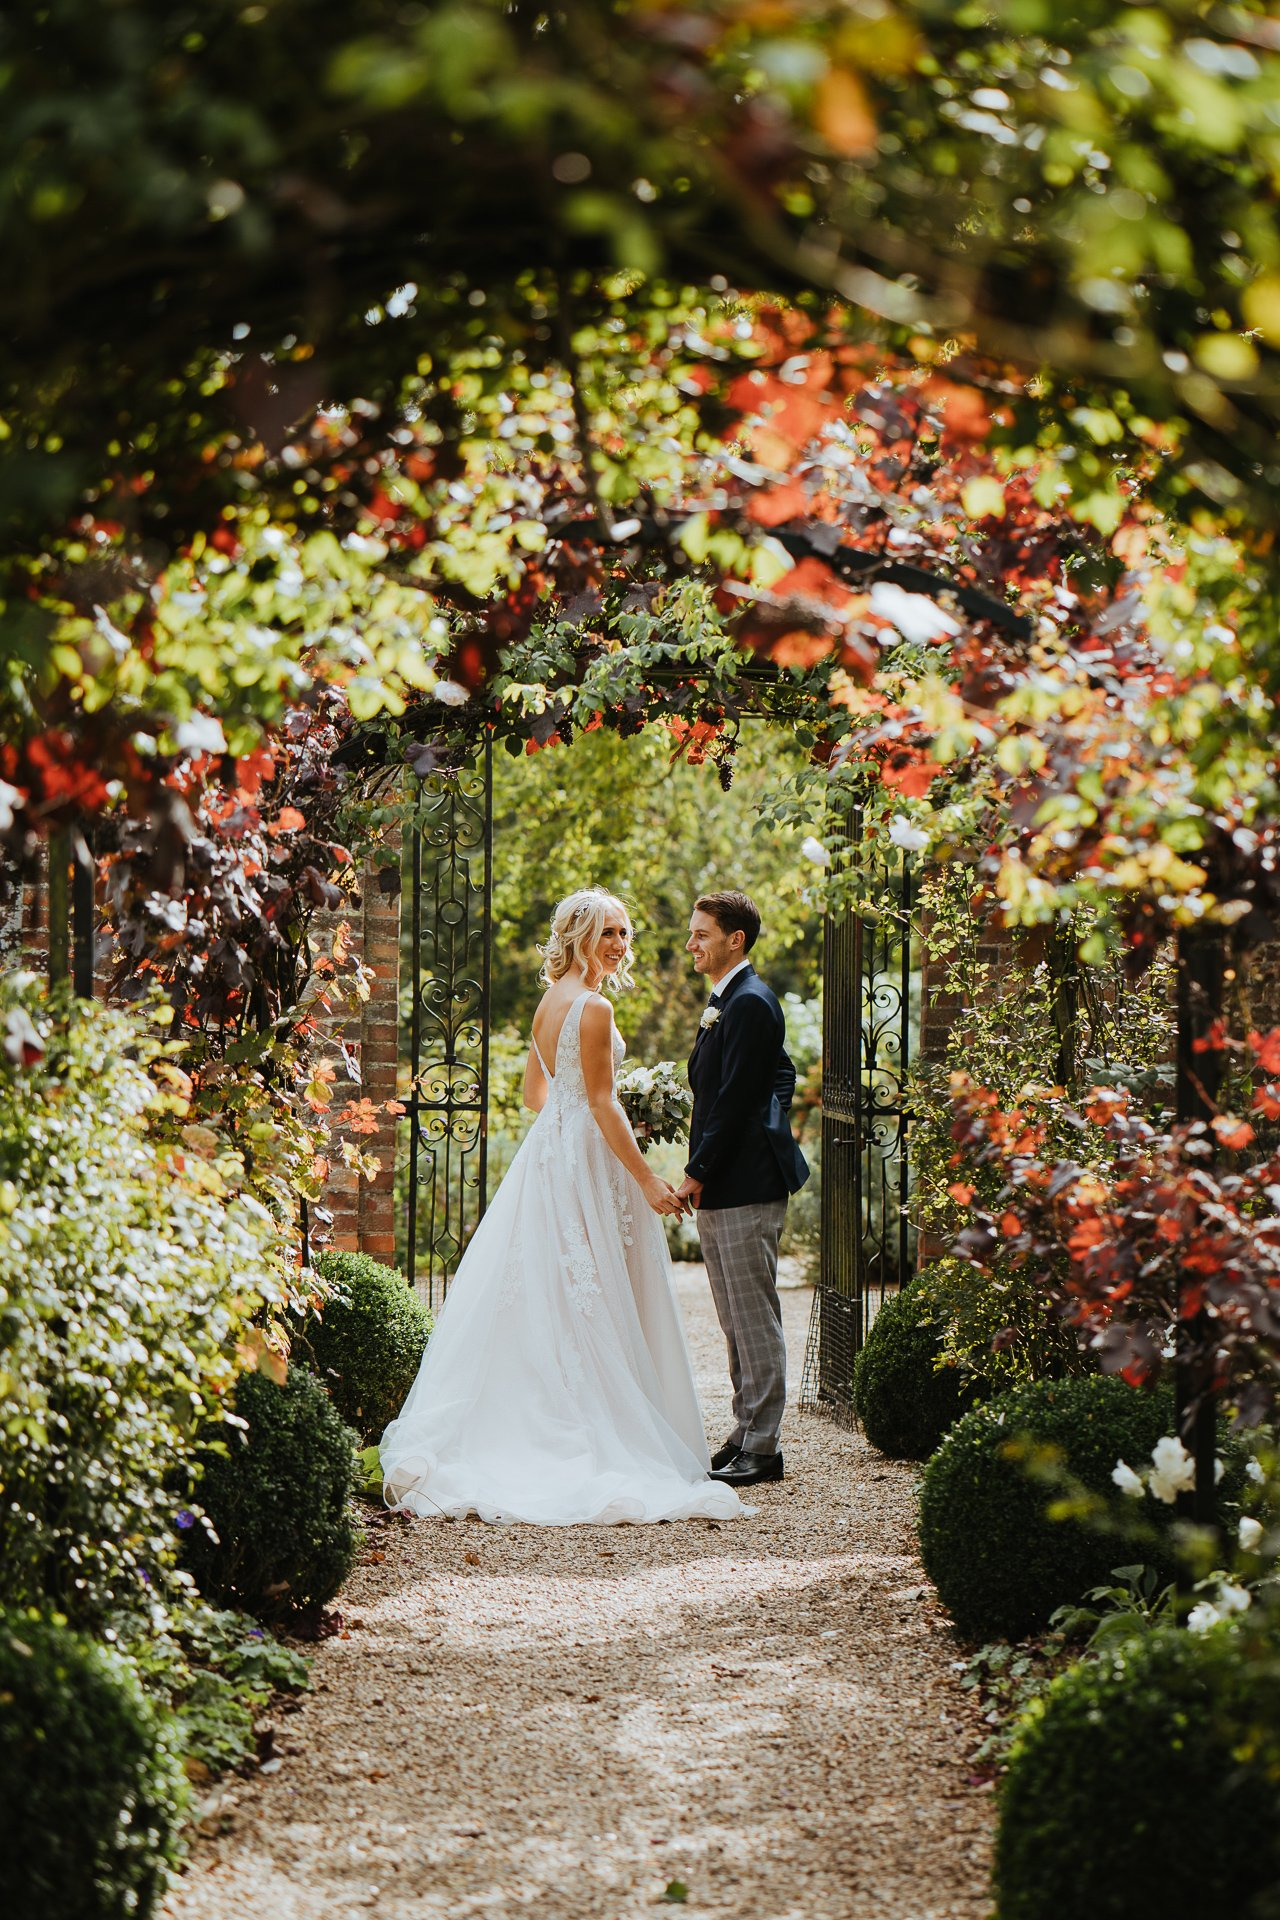 Bride and Groom together under leaf arch